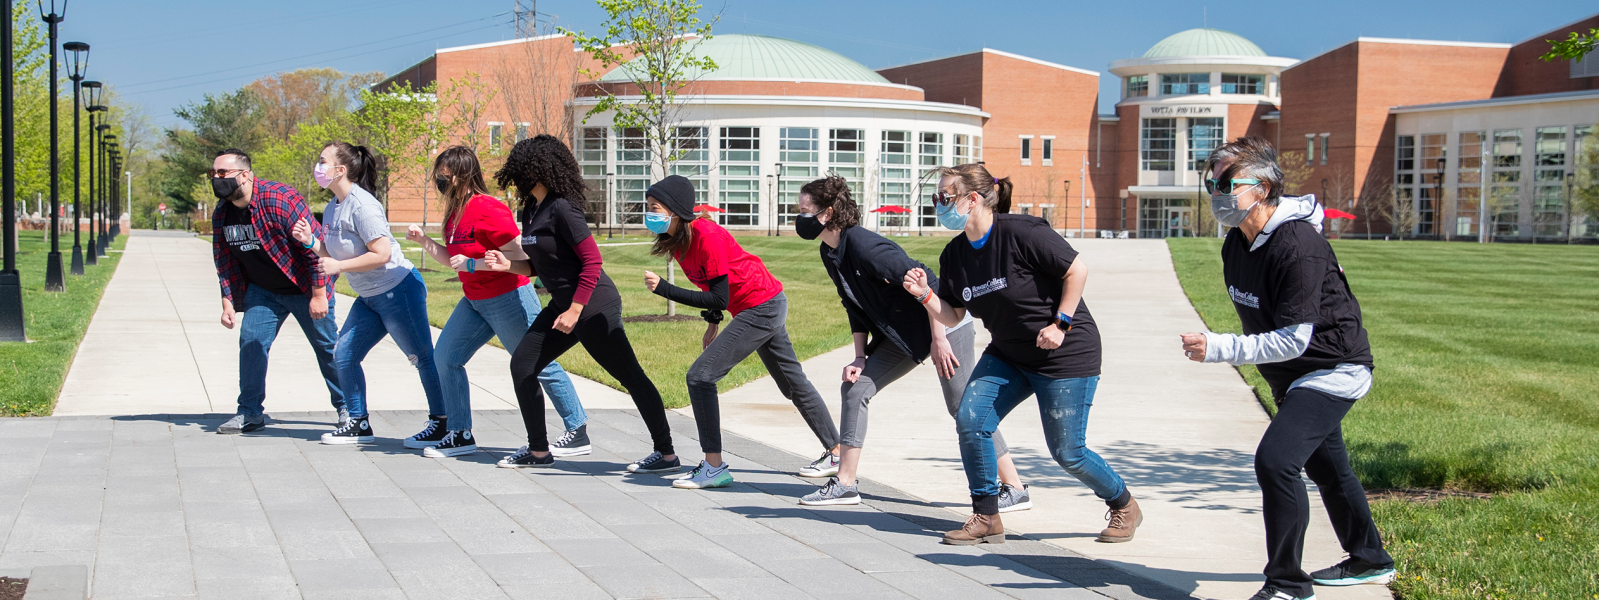 A variety of students in a line ready to run a race